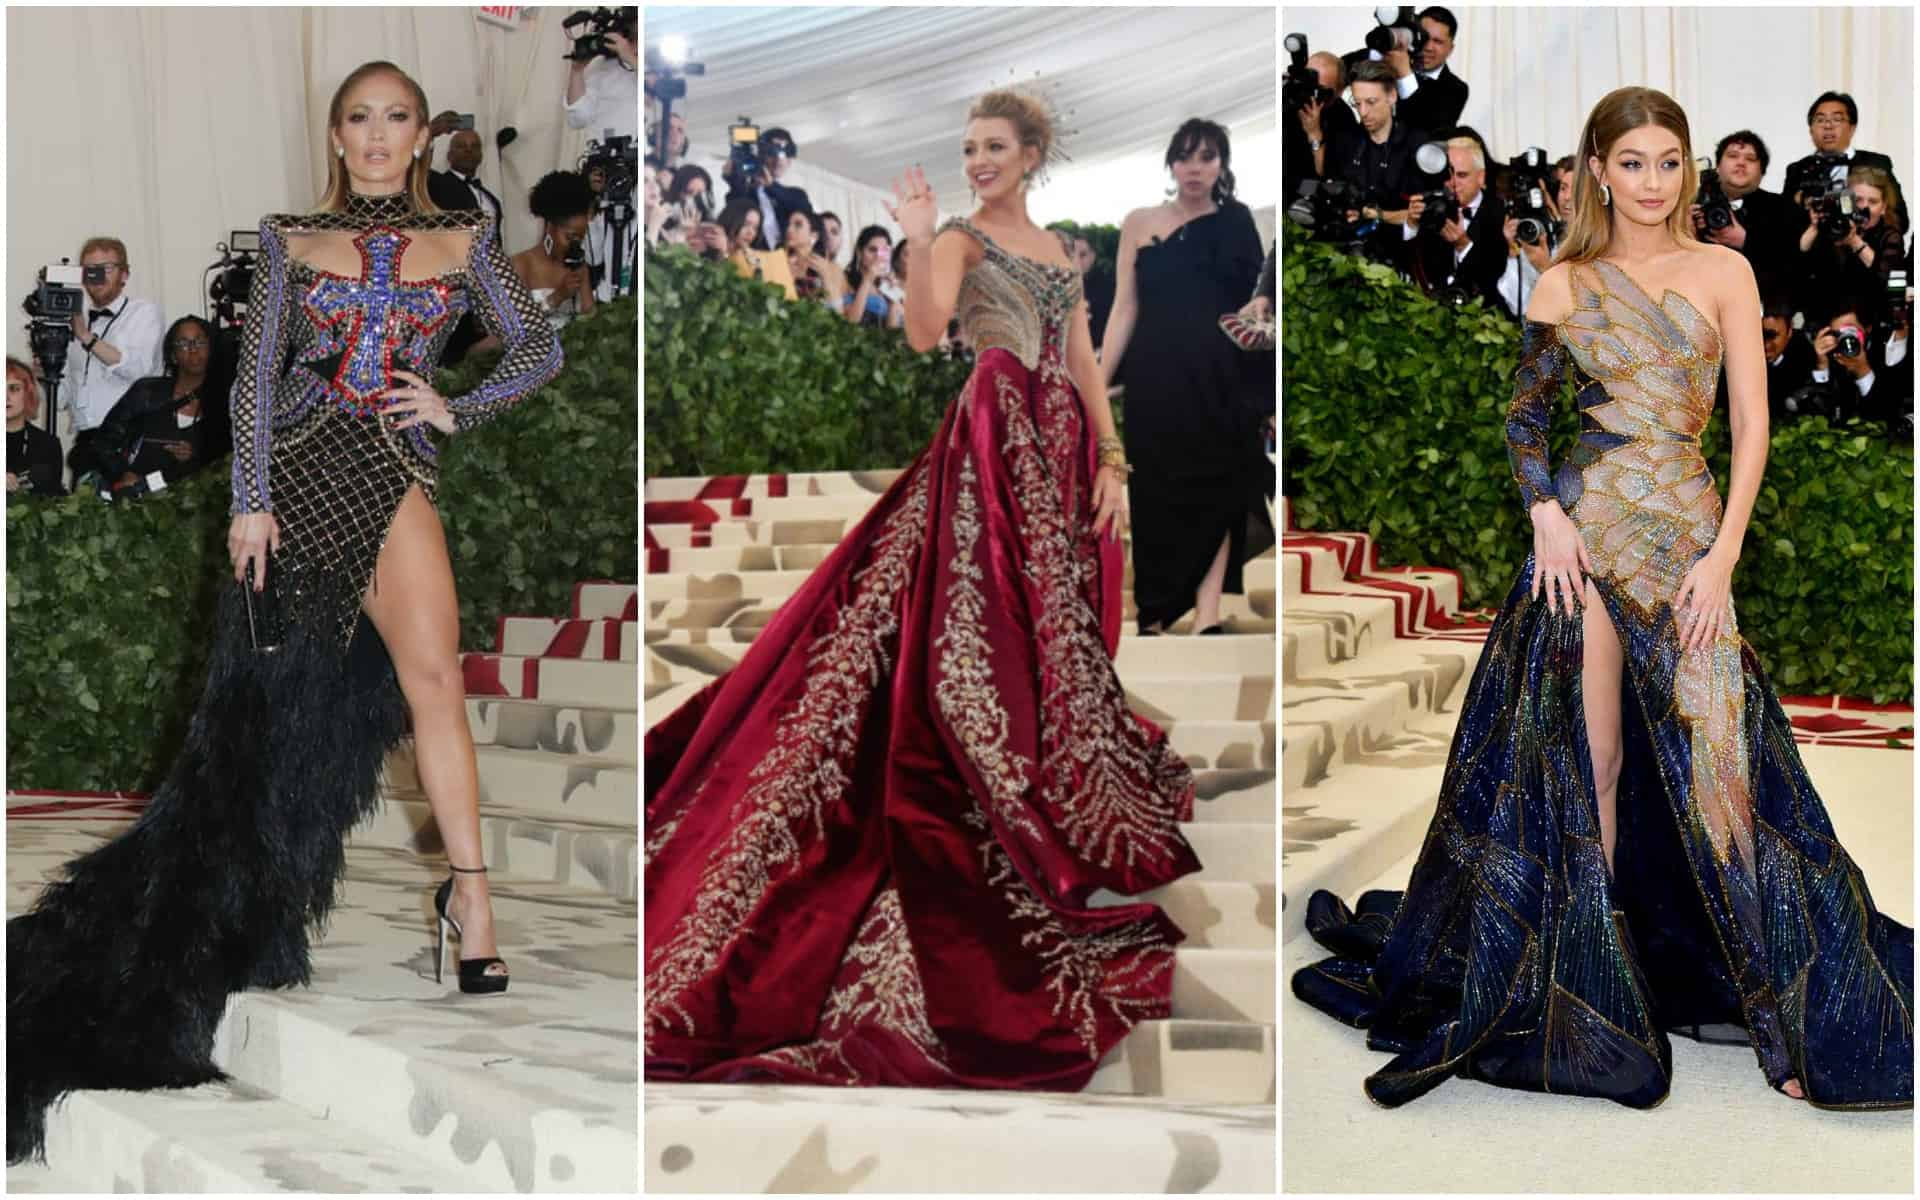 The Most Outrageous Dresses At Met Gala 2018 That You Have